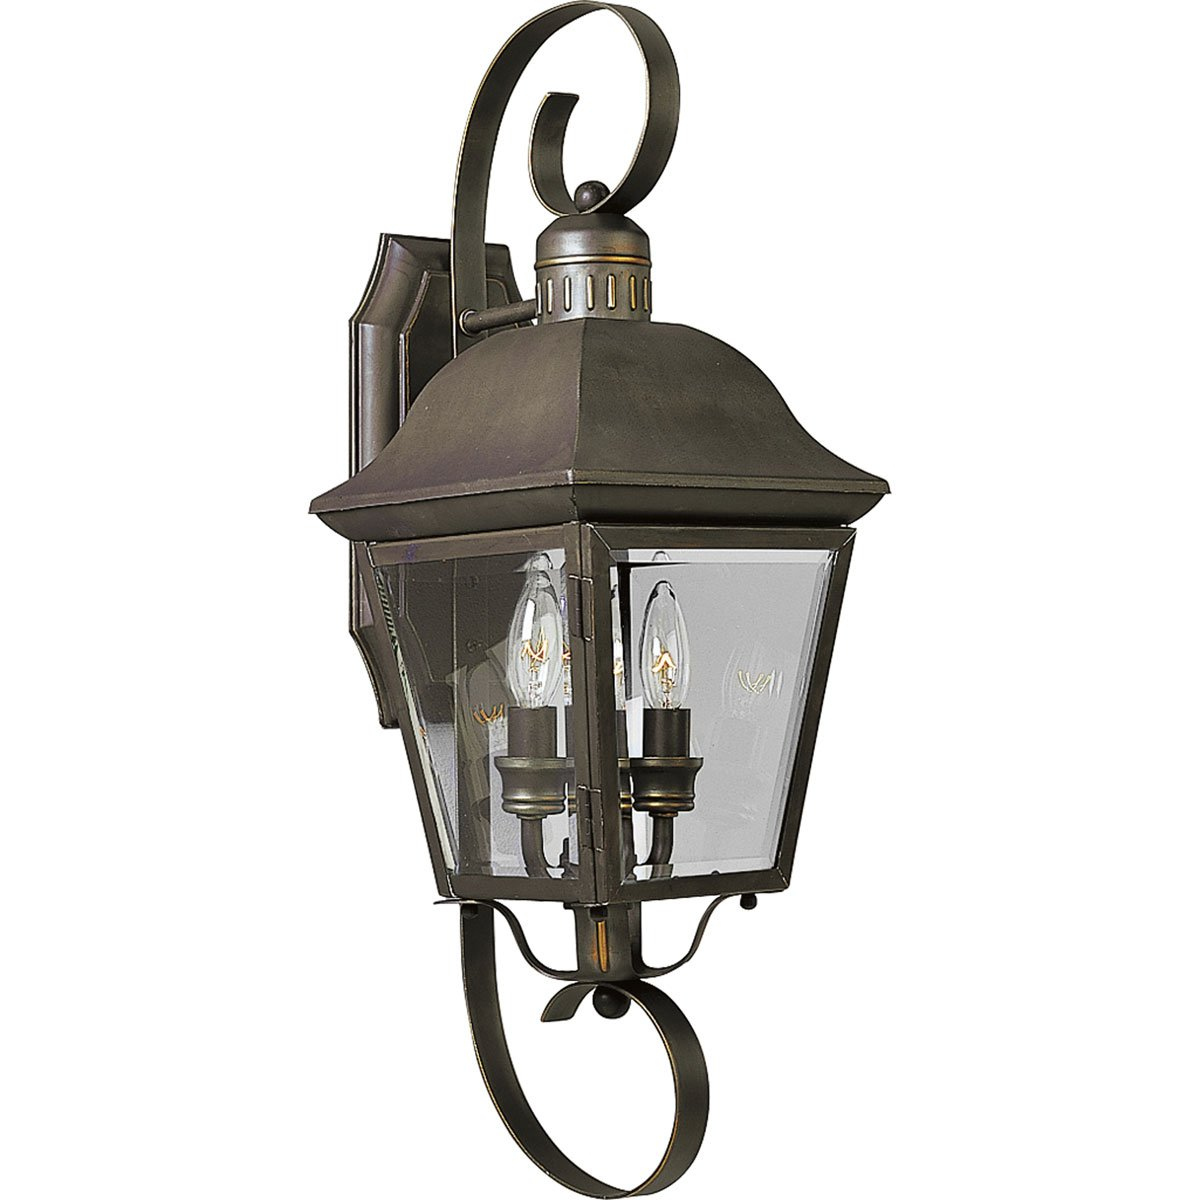 Amazon progress lighting p5688 20 2 light andover medium wall amazon progress lighting p5688 20 2 light andover medium wall lantern with solid brass construction antique bronze outdoor post lights garden mozeypictures Gallery